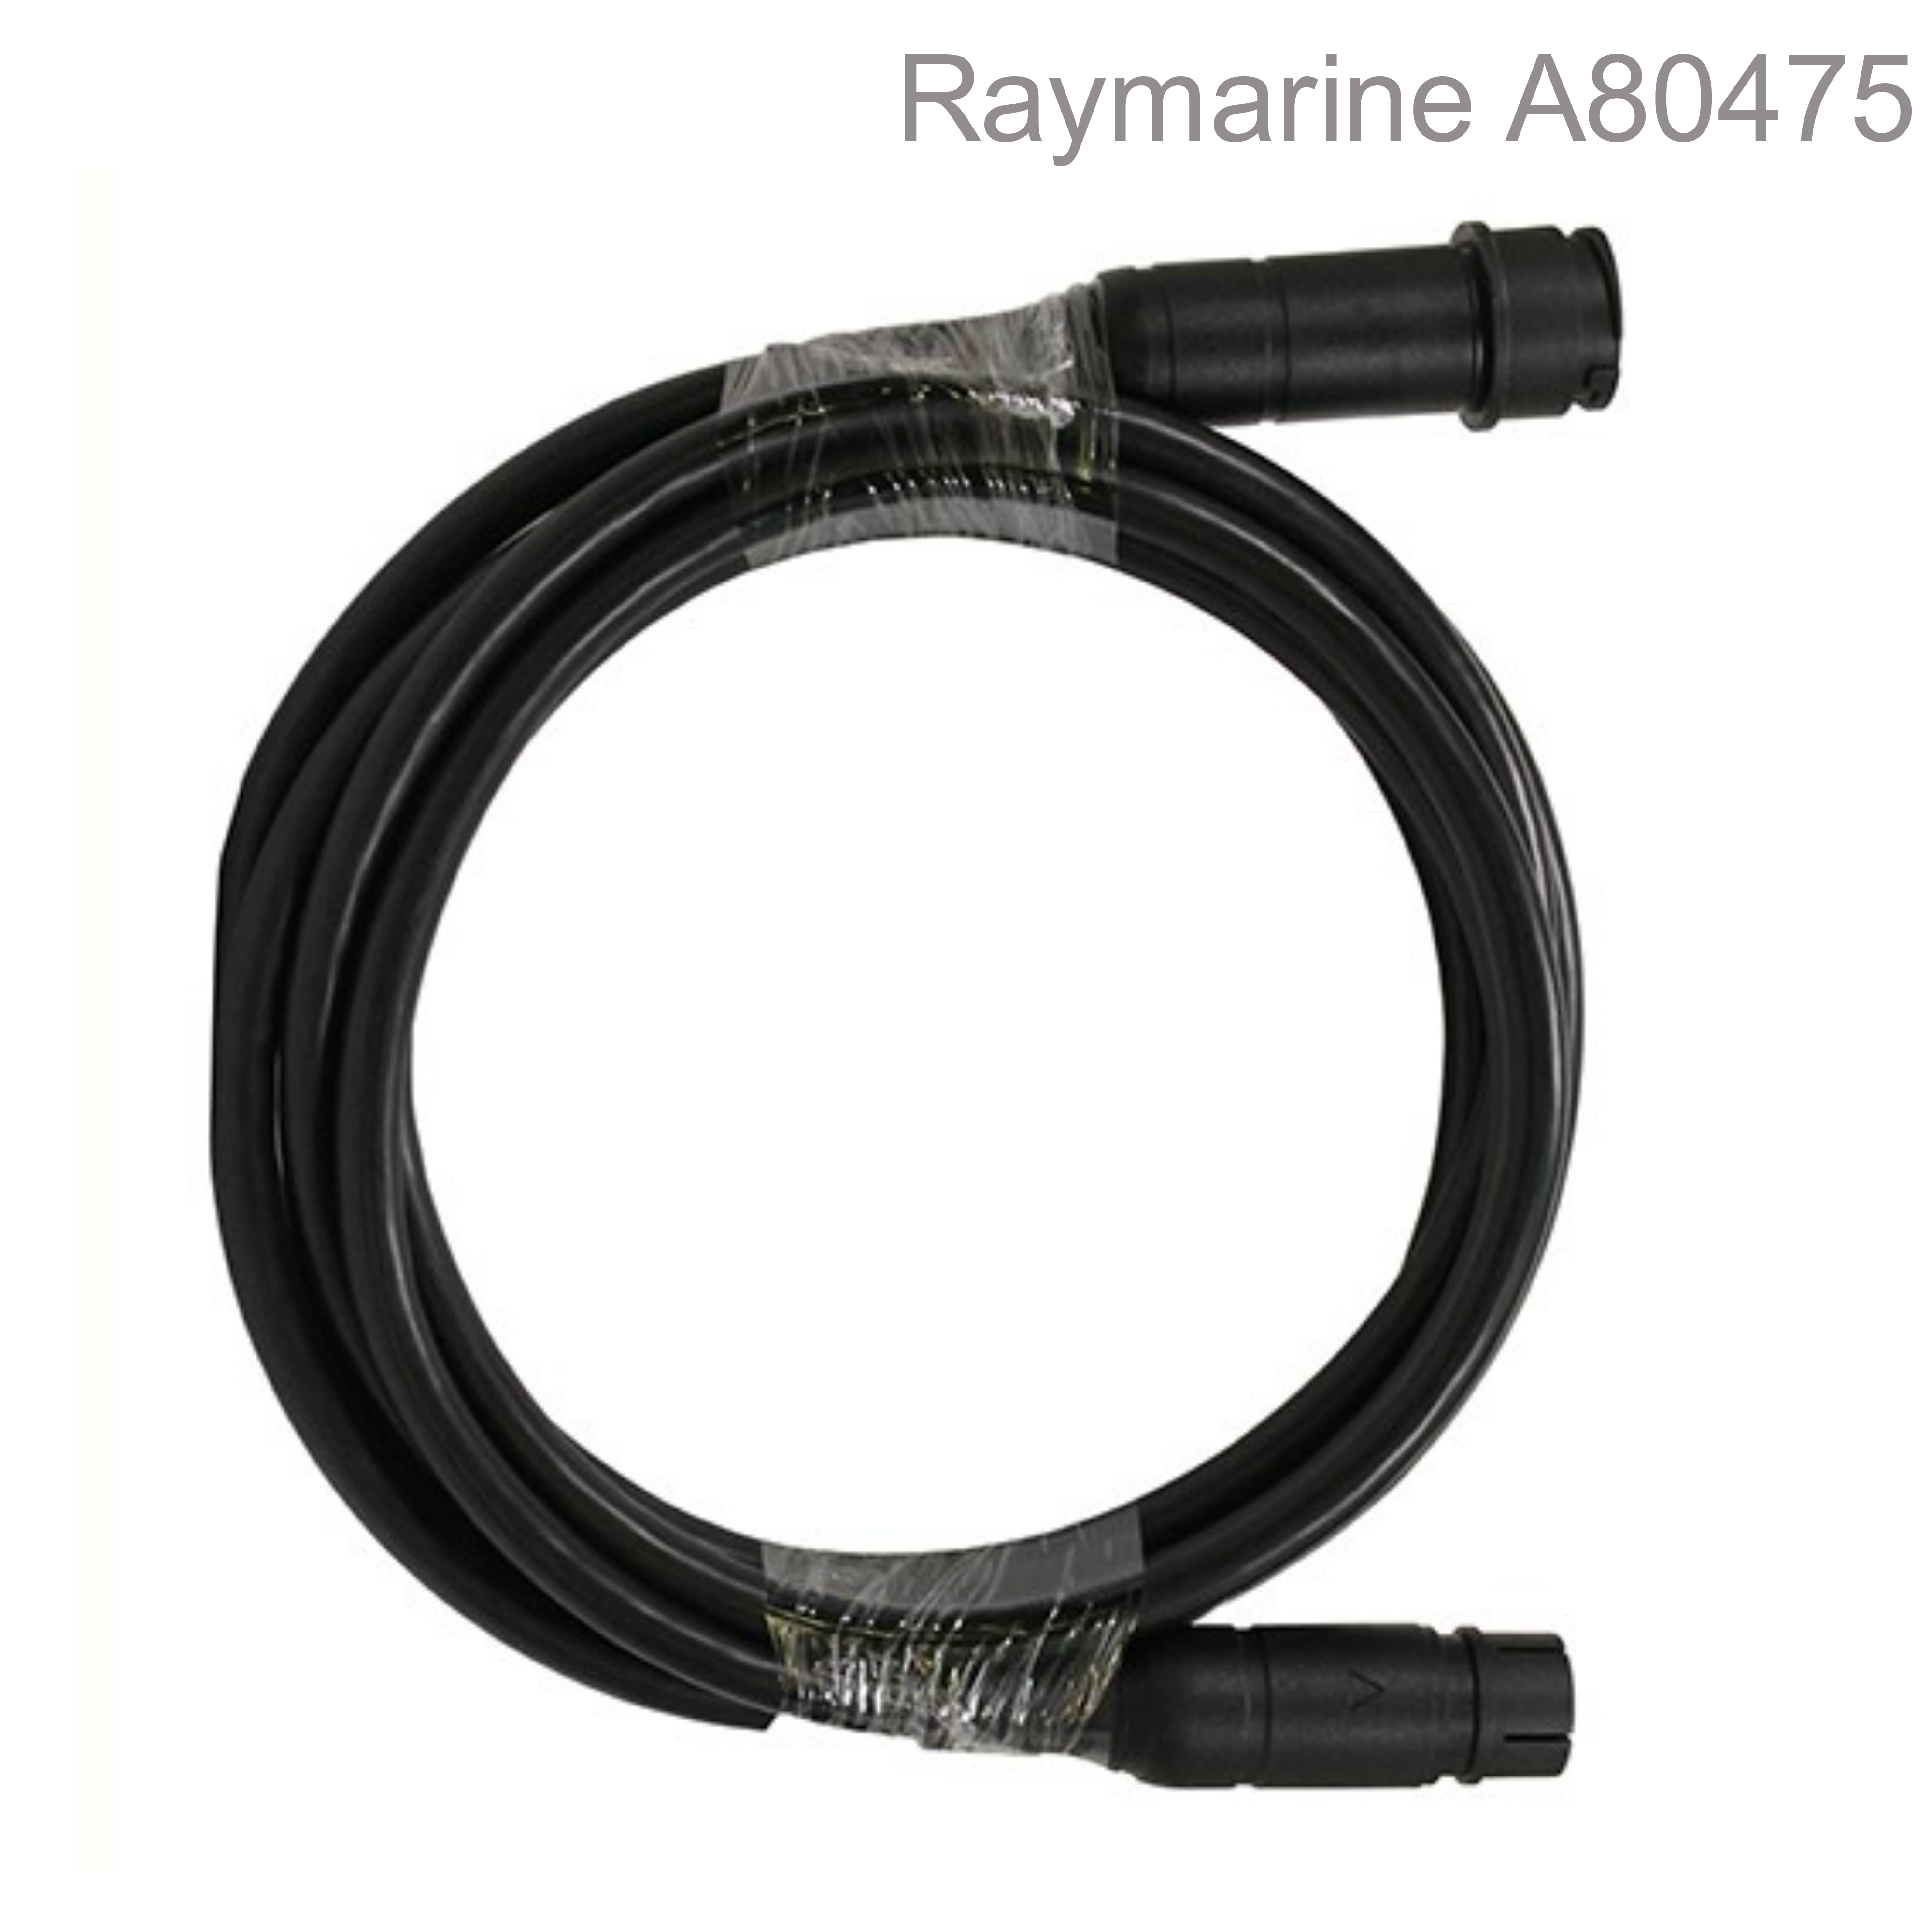 Raymarine  A80475|RealVision 3D Transducer Extension Cable|3 Meter|Waterproof